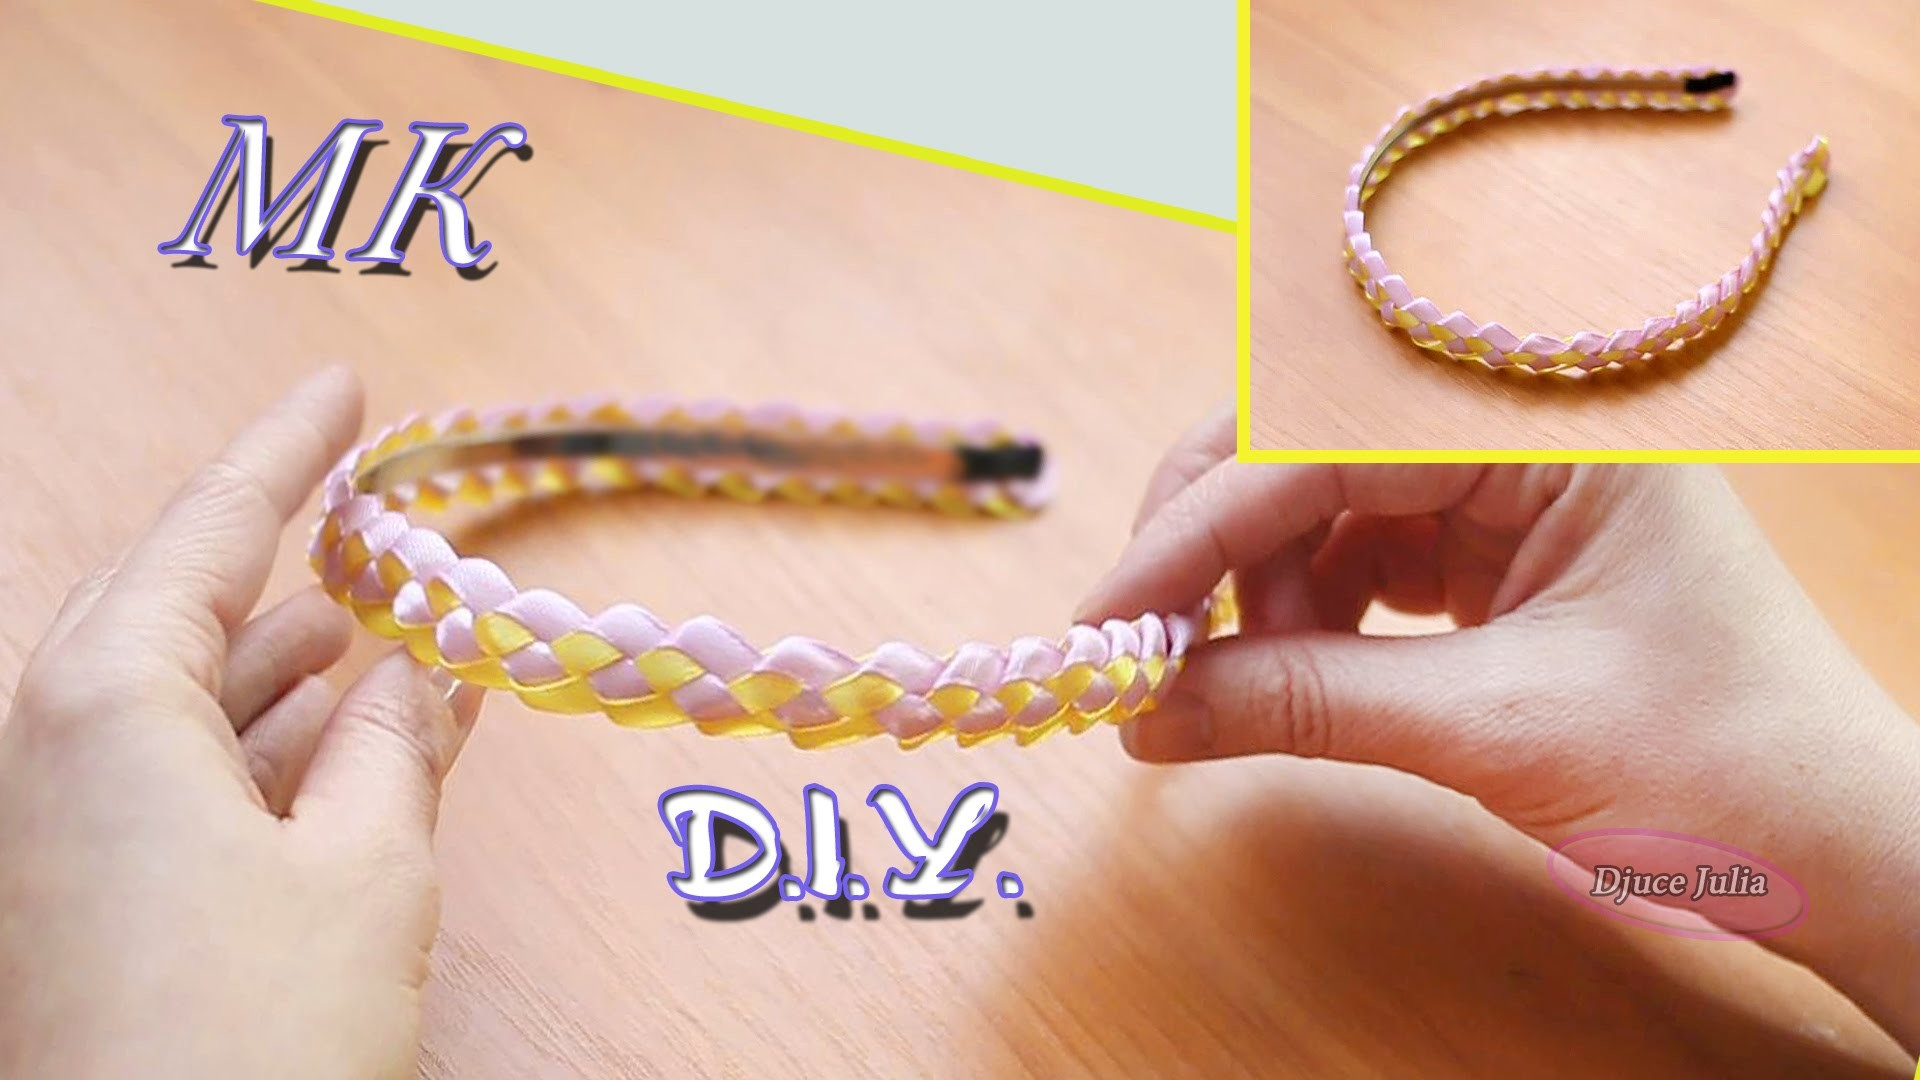 КОСИЧКА из лент для ободка.How to make ribbon headband